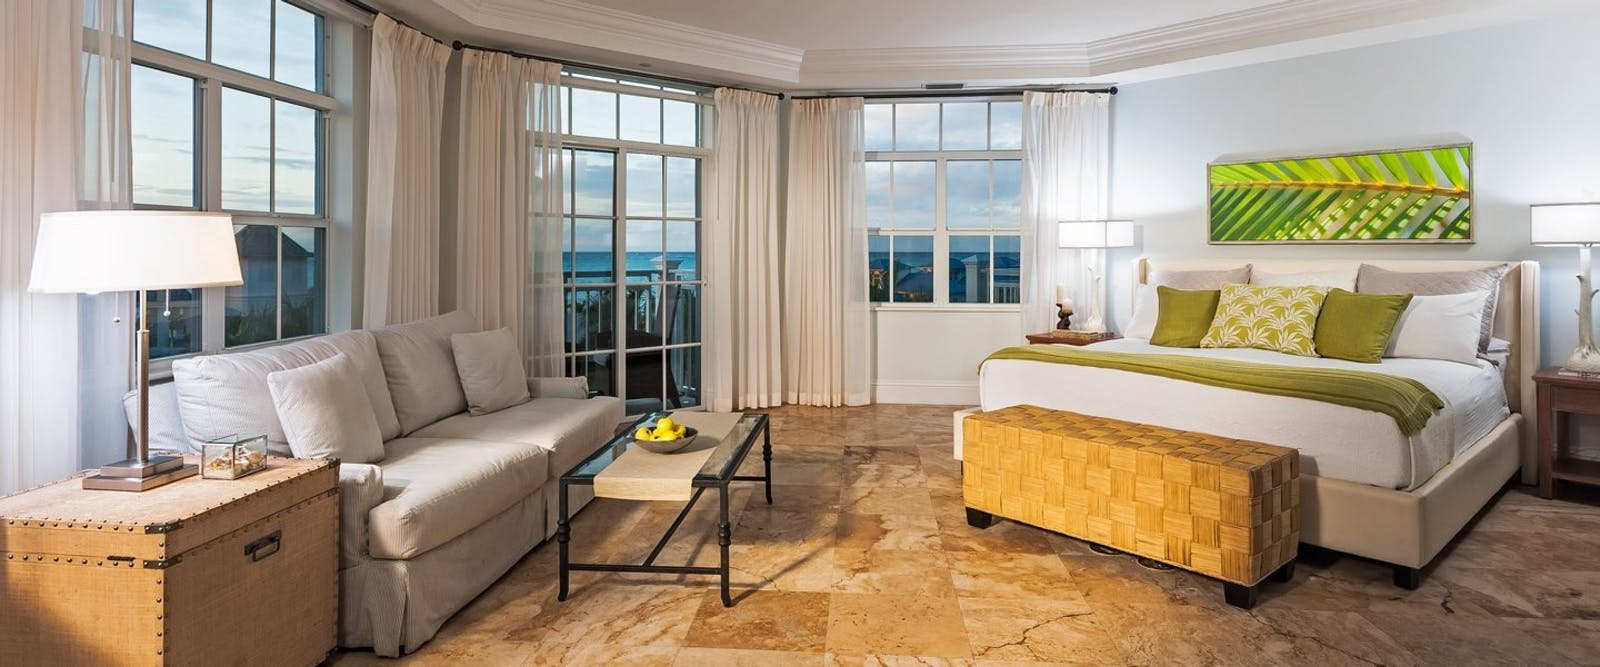 Bedroom at Beaches Turks & Caicos Resort Villages & Spa